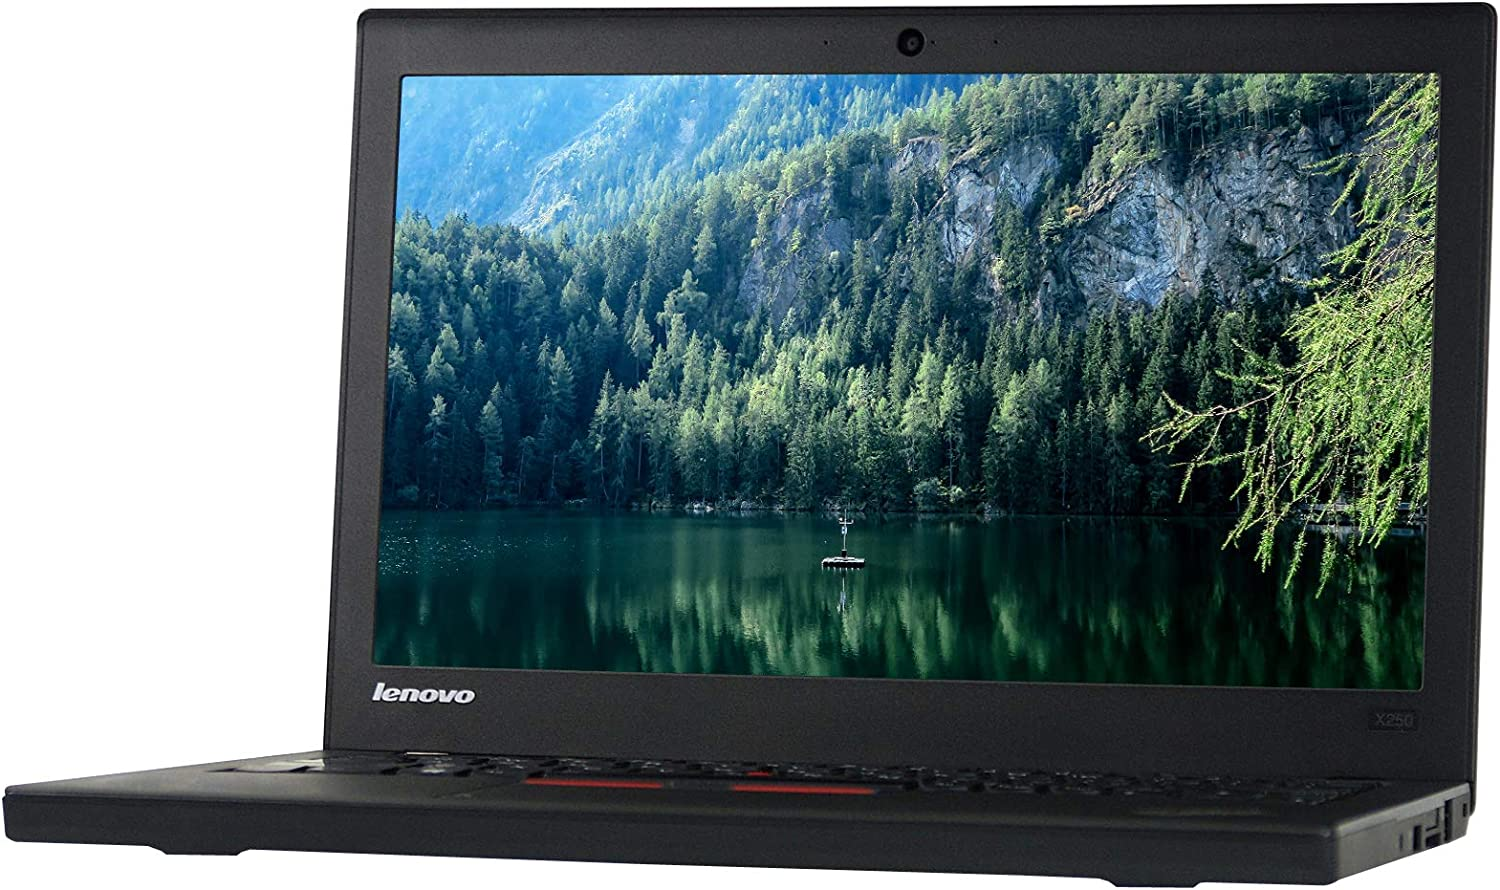 Lenovo ThinkPad X250 12.5in Laptop, Core i5-5300U 2.3GHz, 8GB Ram, 240GB SSD, Windows 10 Pro 64bit (Renewed)